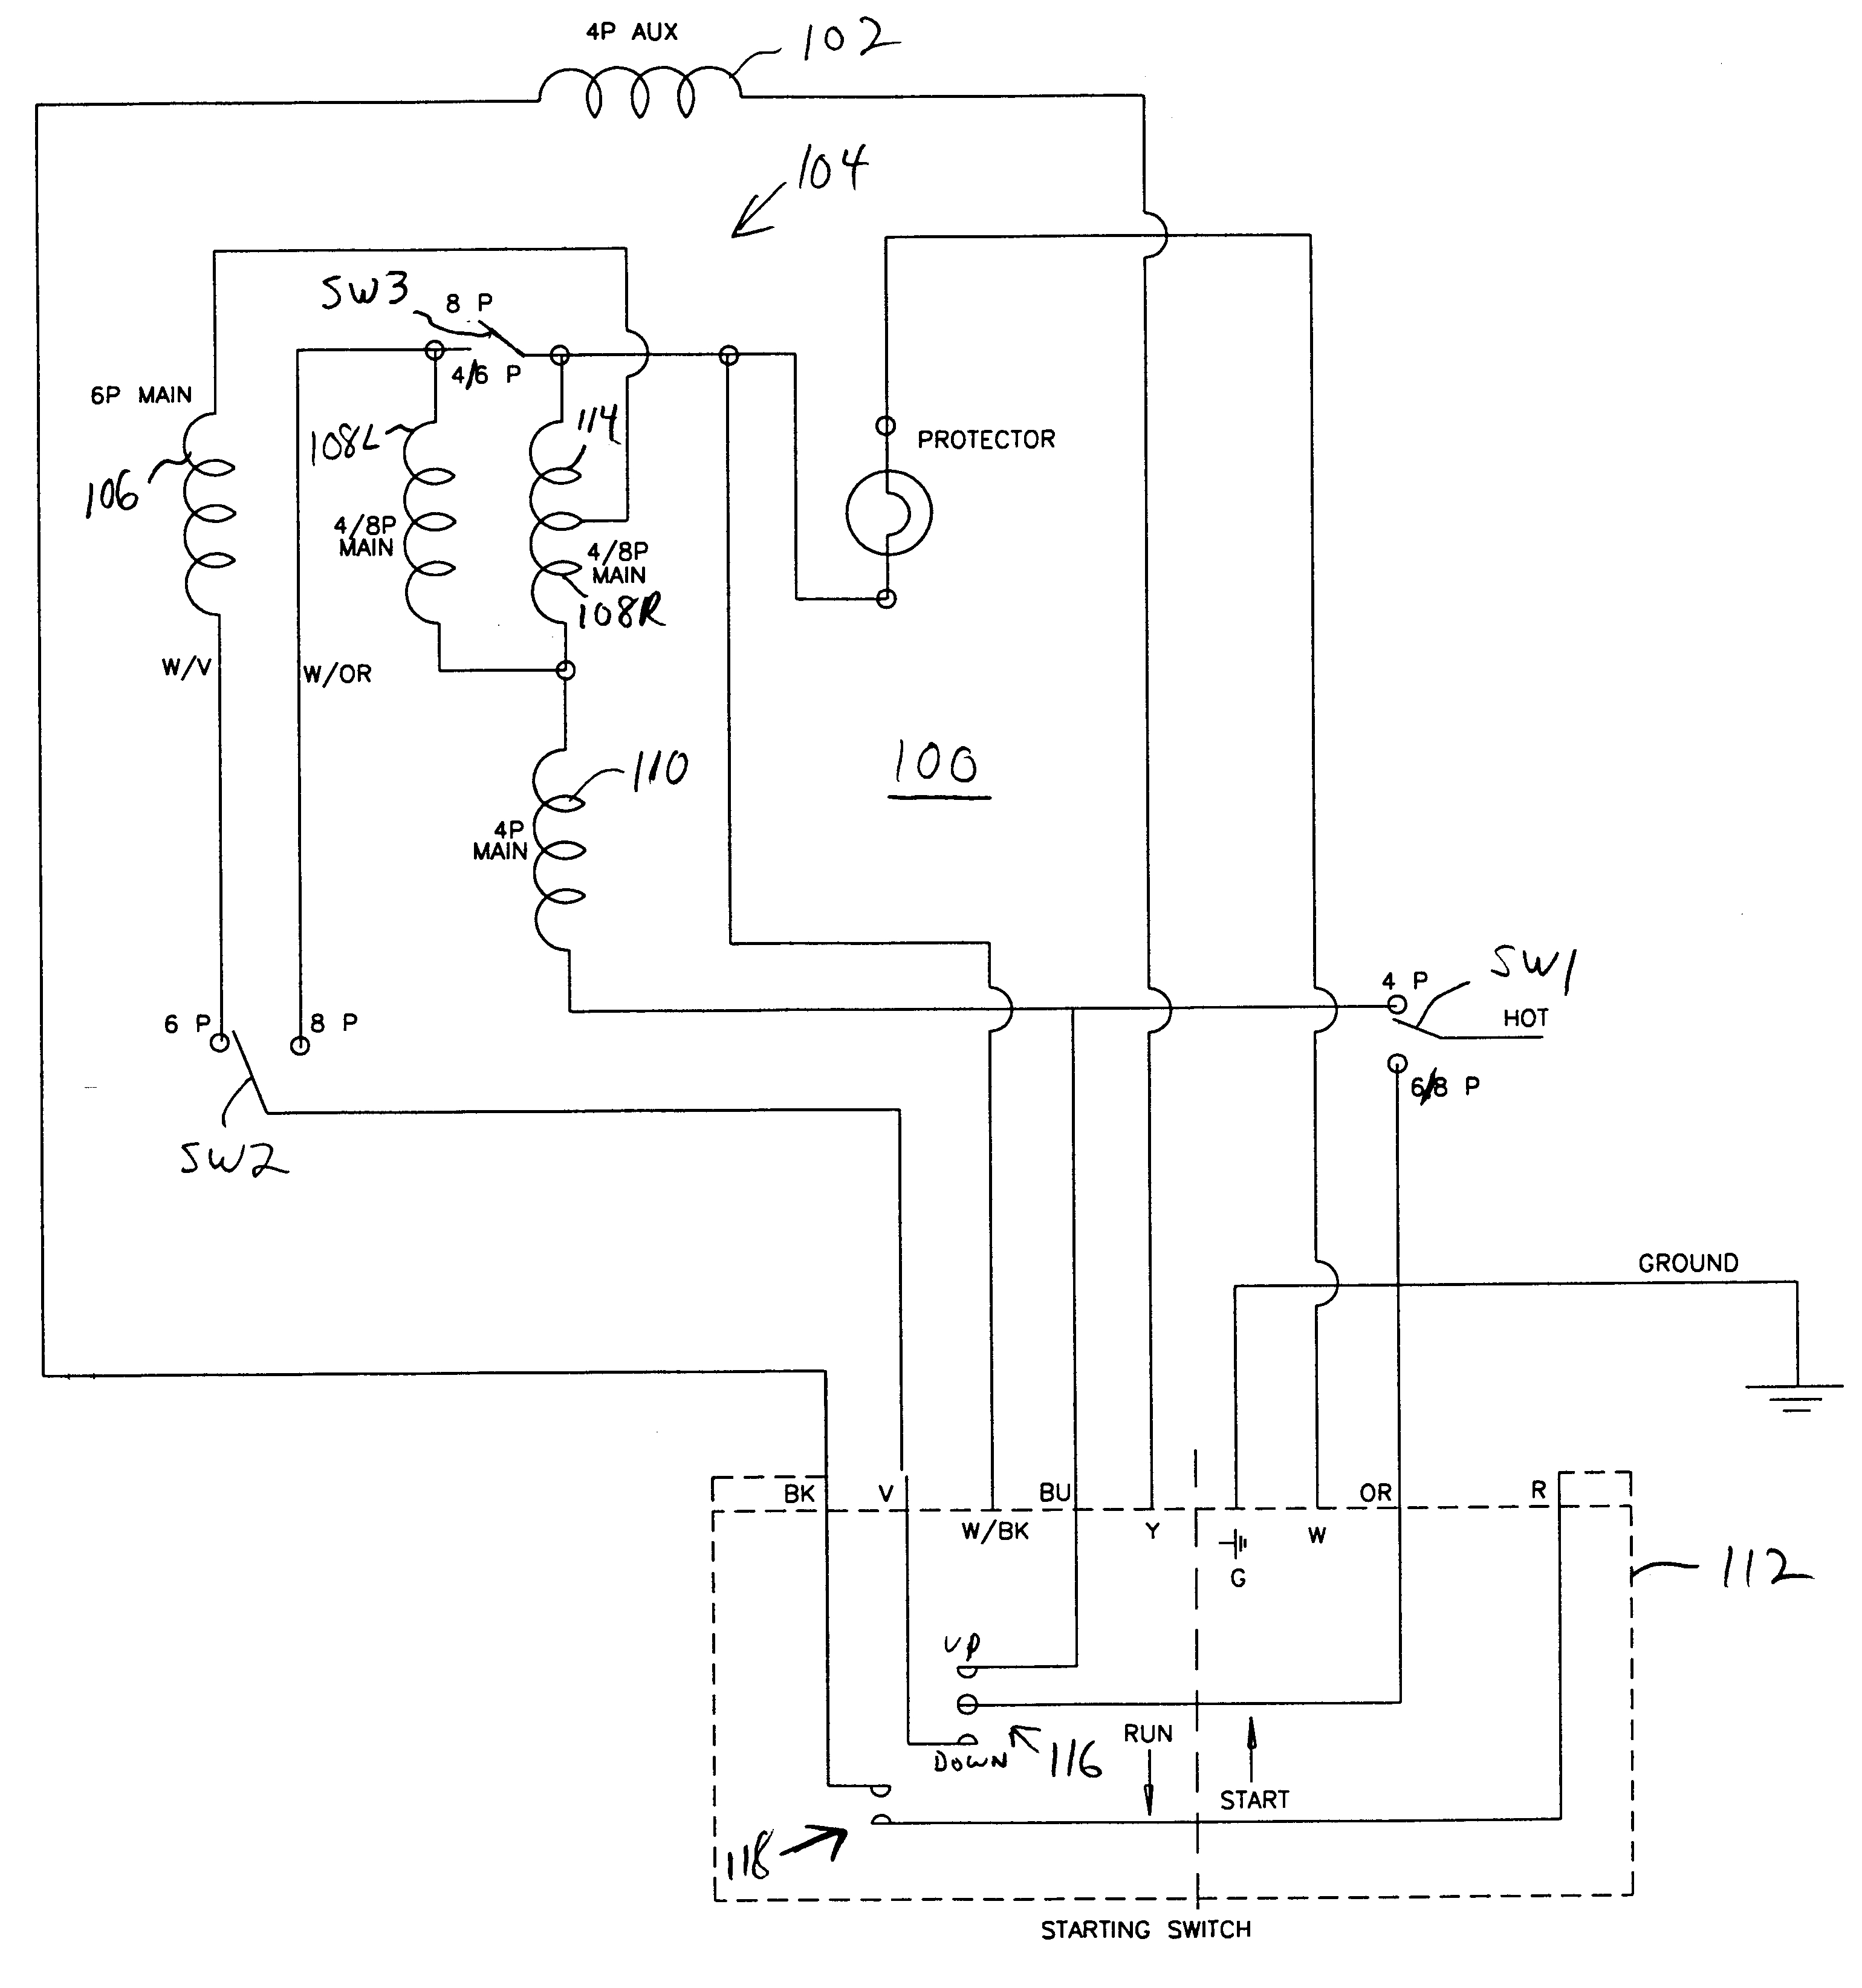 Emerson Jacuzzi Wiring Schematics | Manual E-Books - Emerson Electric Motors Wiring Diagram